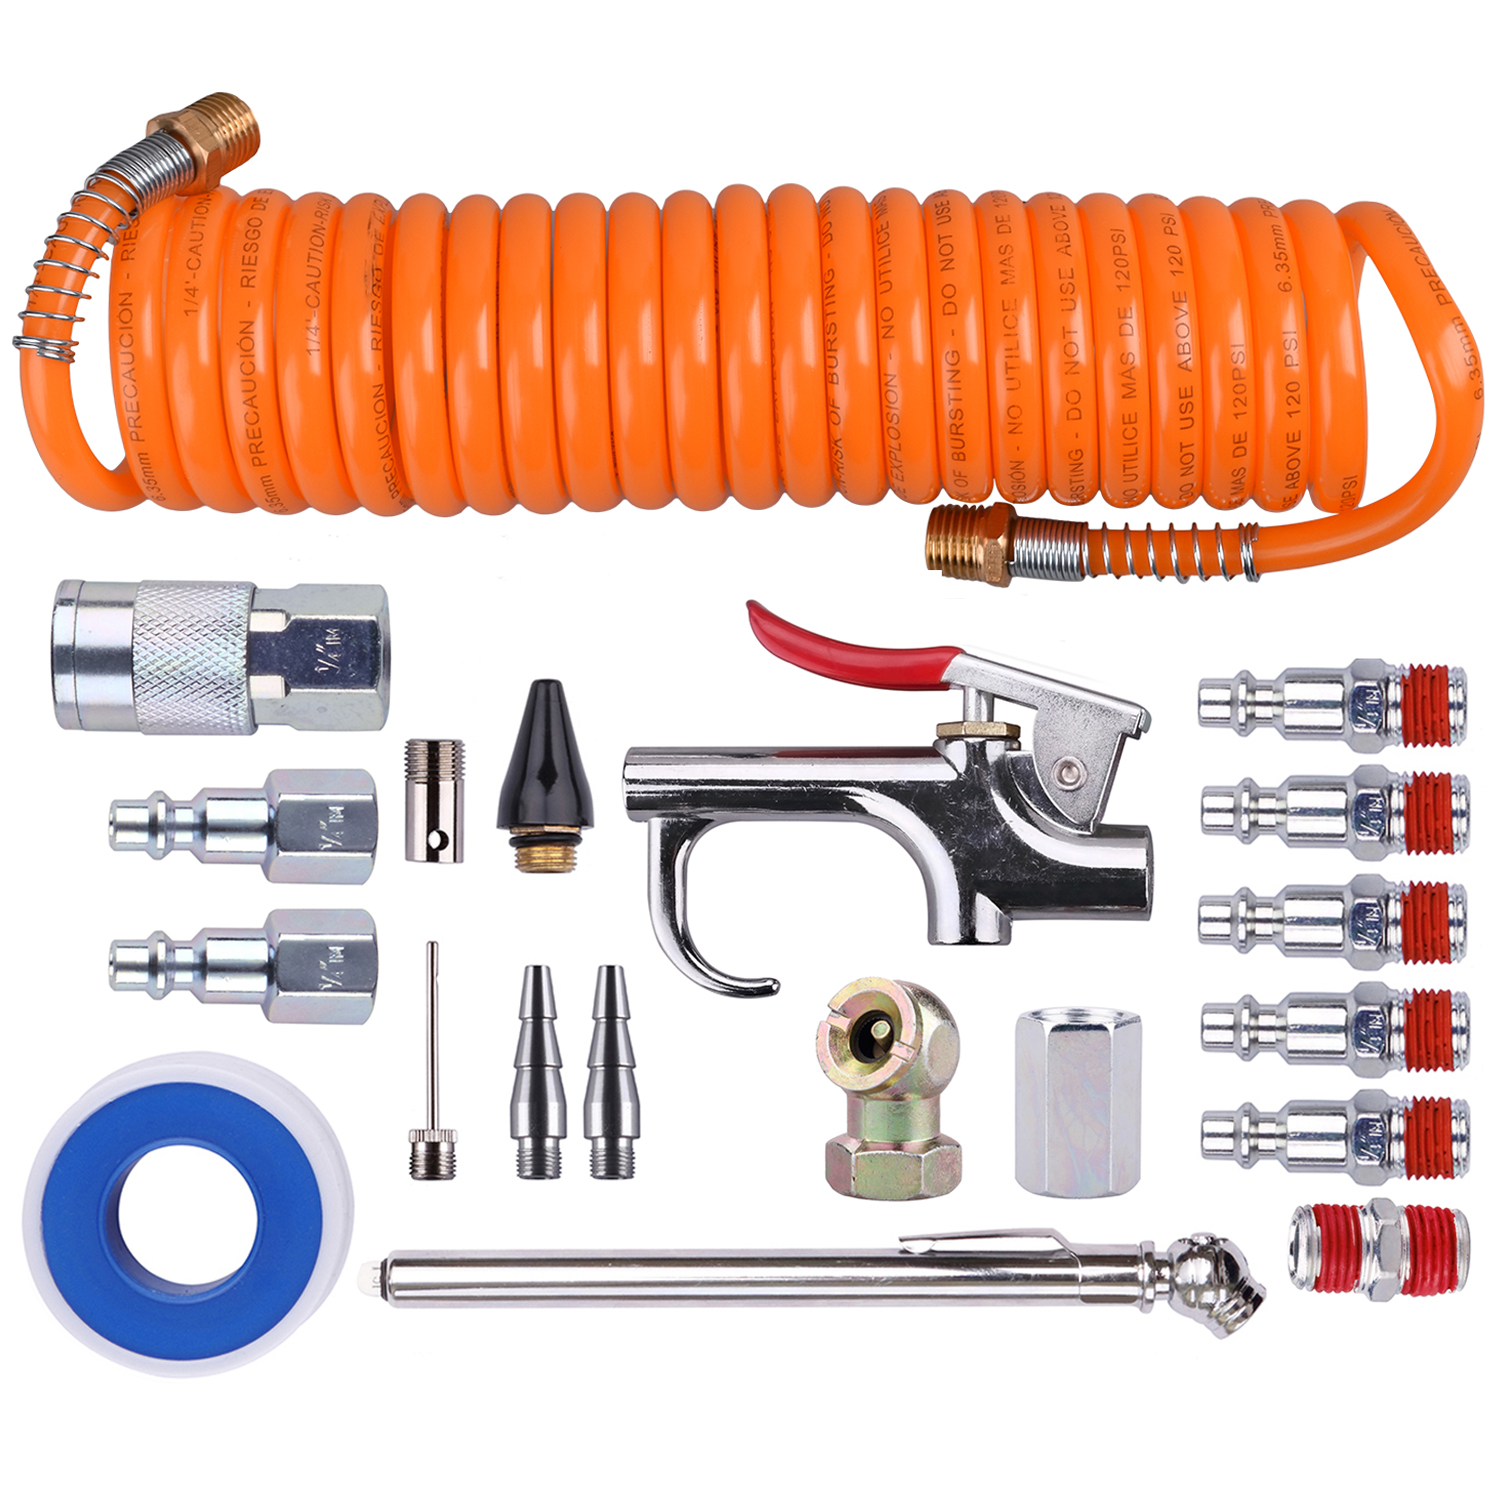 "WYNNsky 1/4""  Air Compressor kit - 20 Piece.Air Accessory kit Tool with  PU Hose/Blow Gun/Tire Gauge/Storage Case"